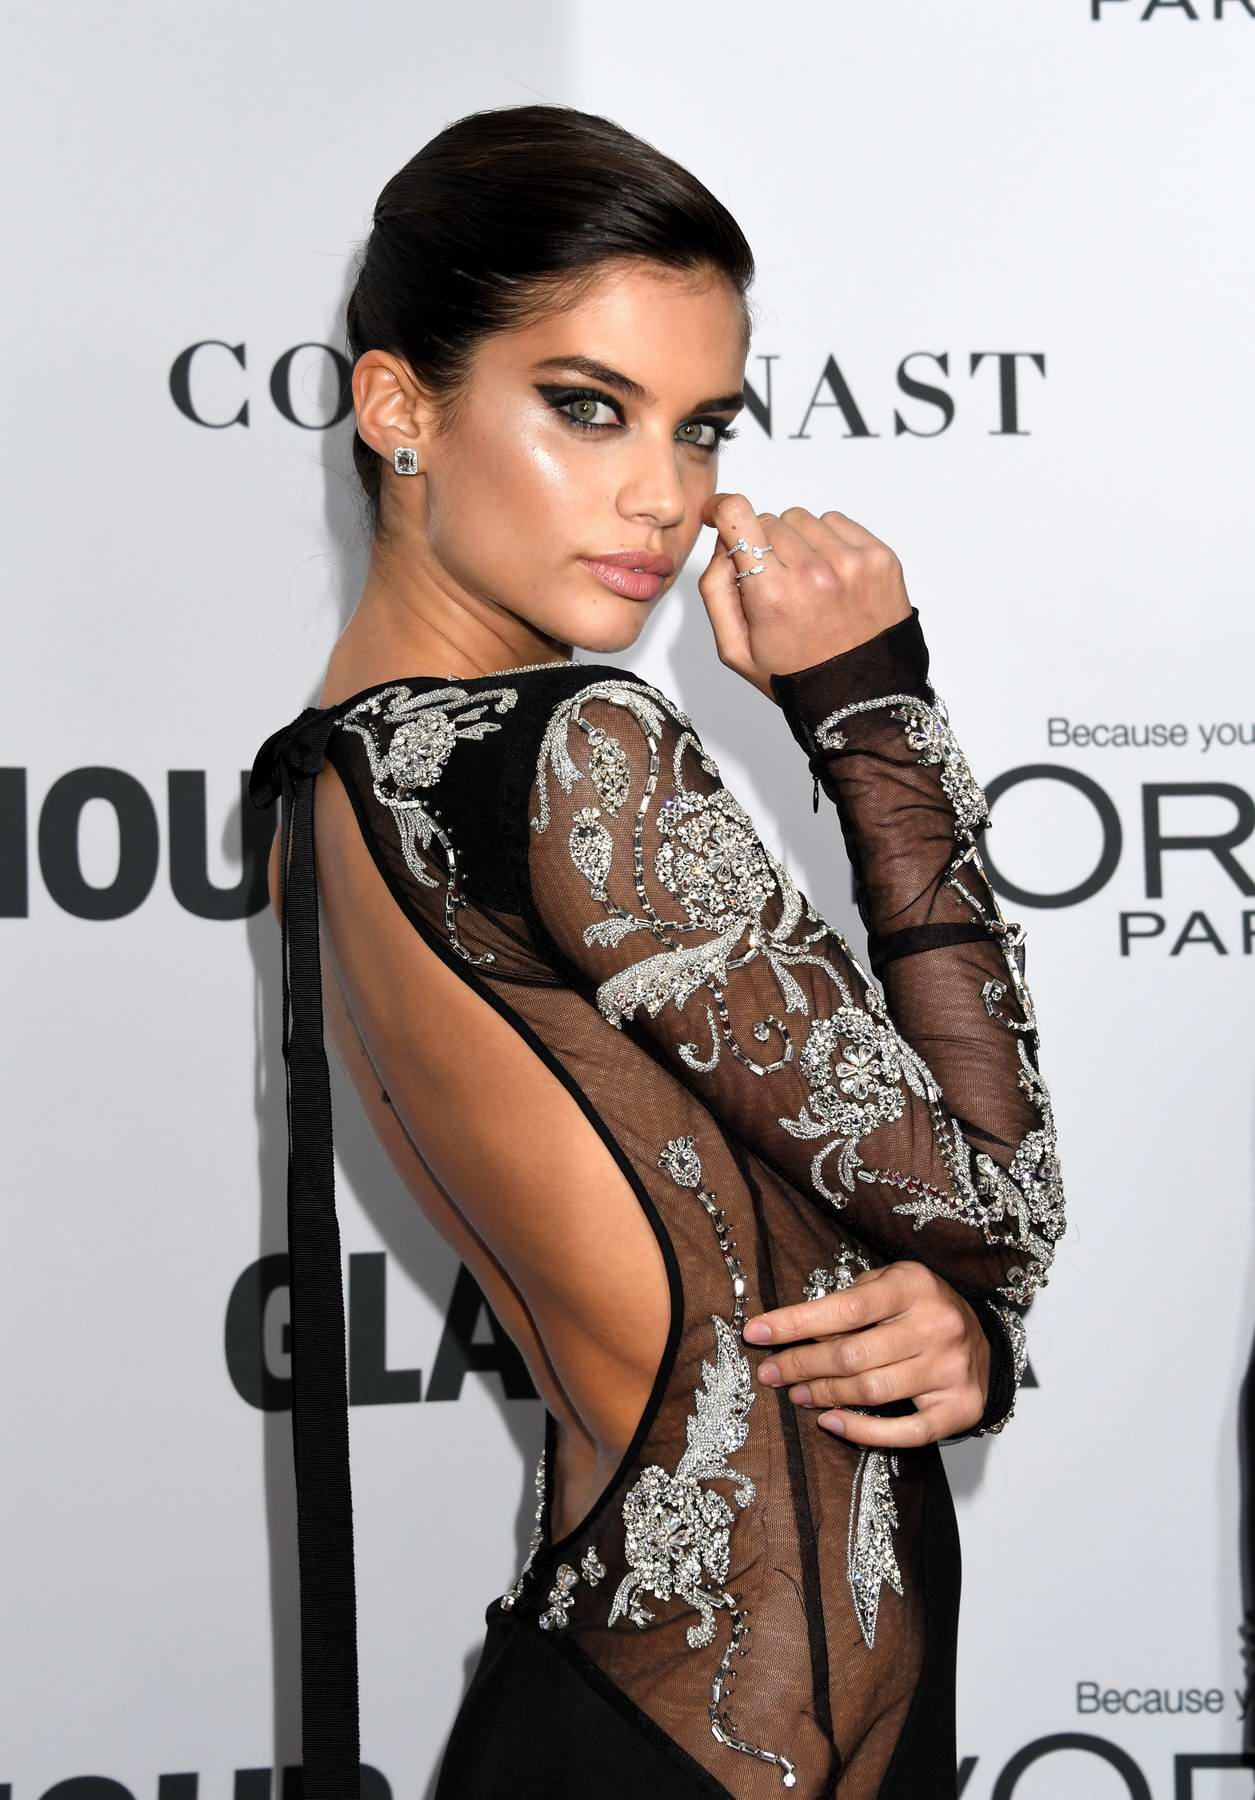 Sara Sampaio at the Glamour Women Of The Year Awards in New York